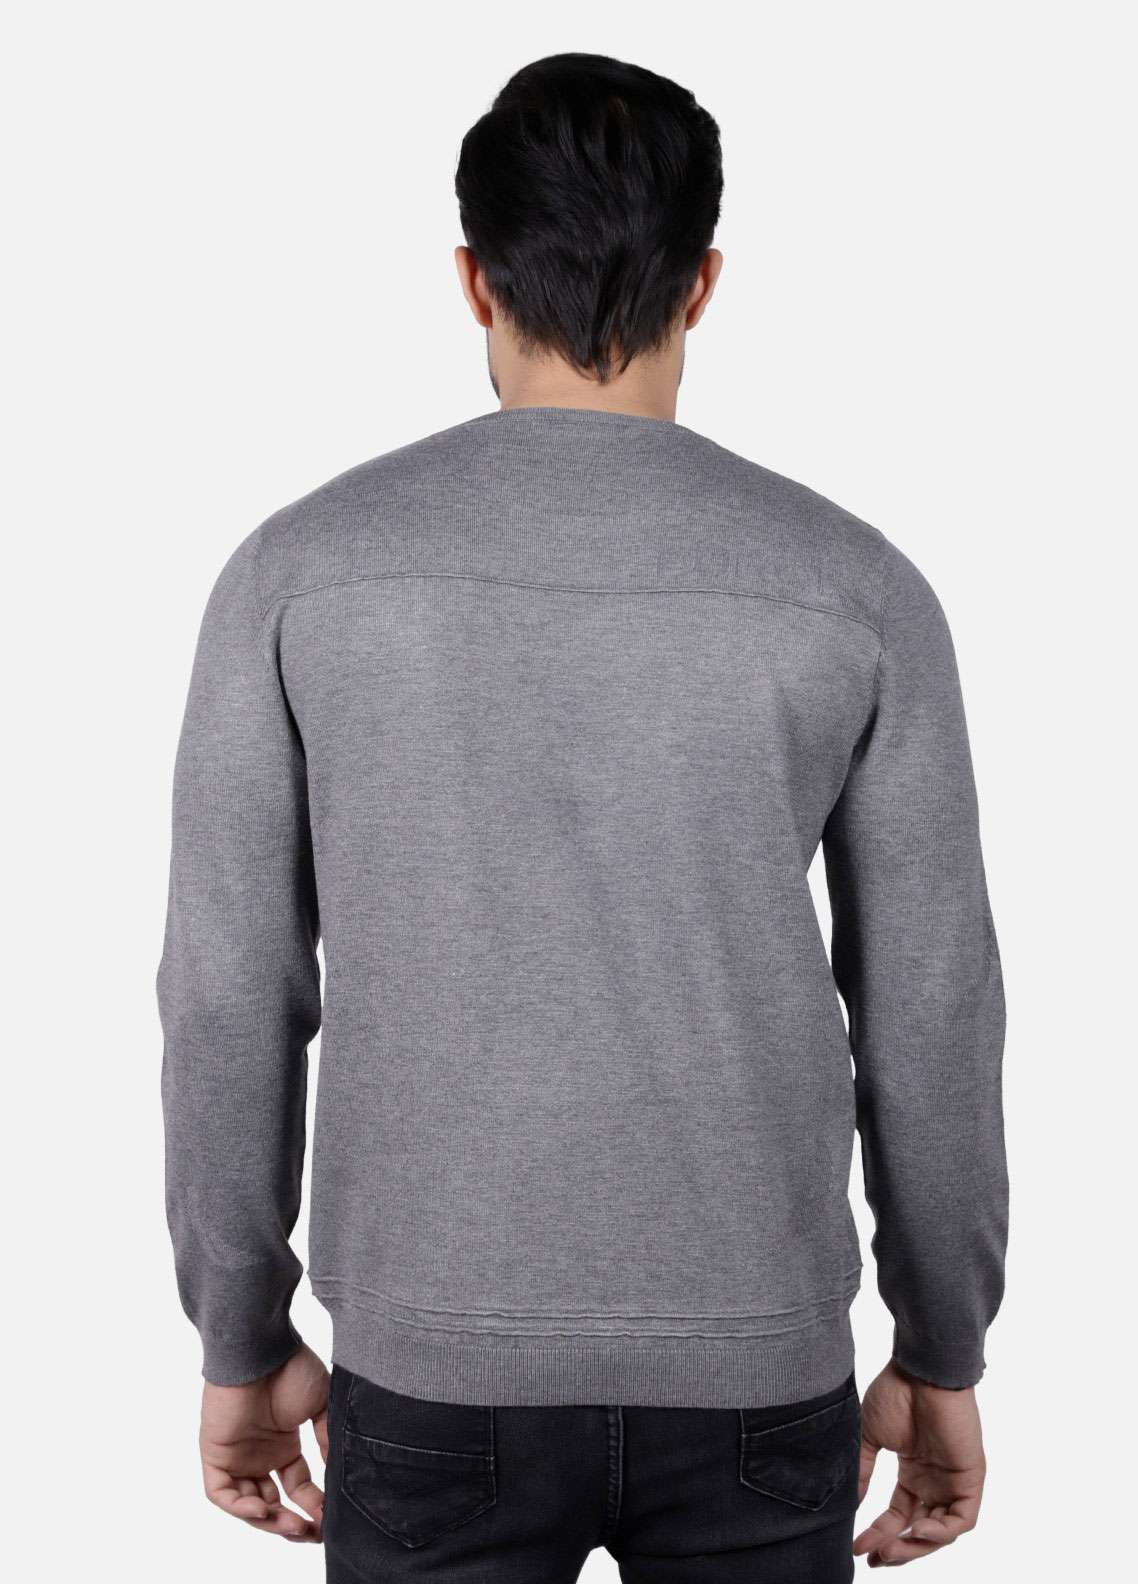 Furor Jersey Casual Sweatshirts for Men - Grey 017223